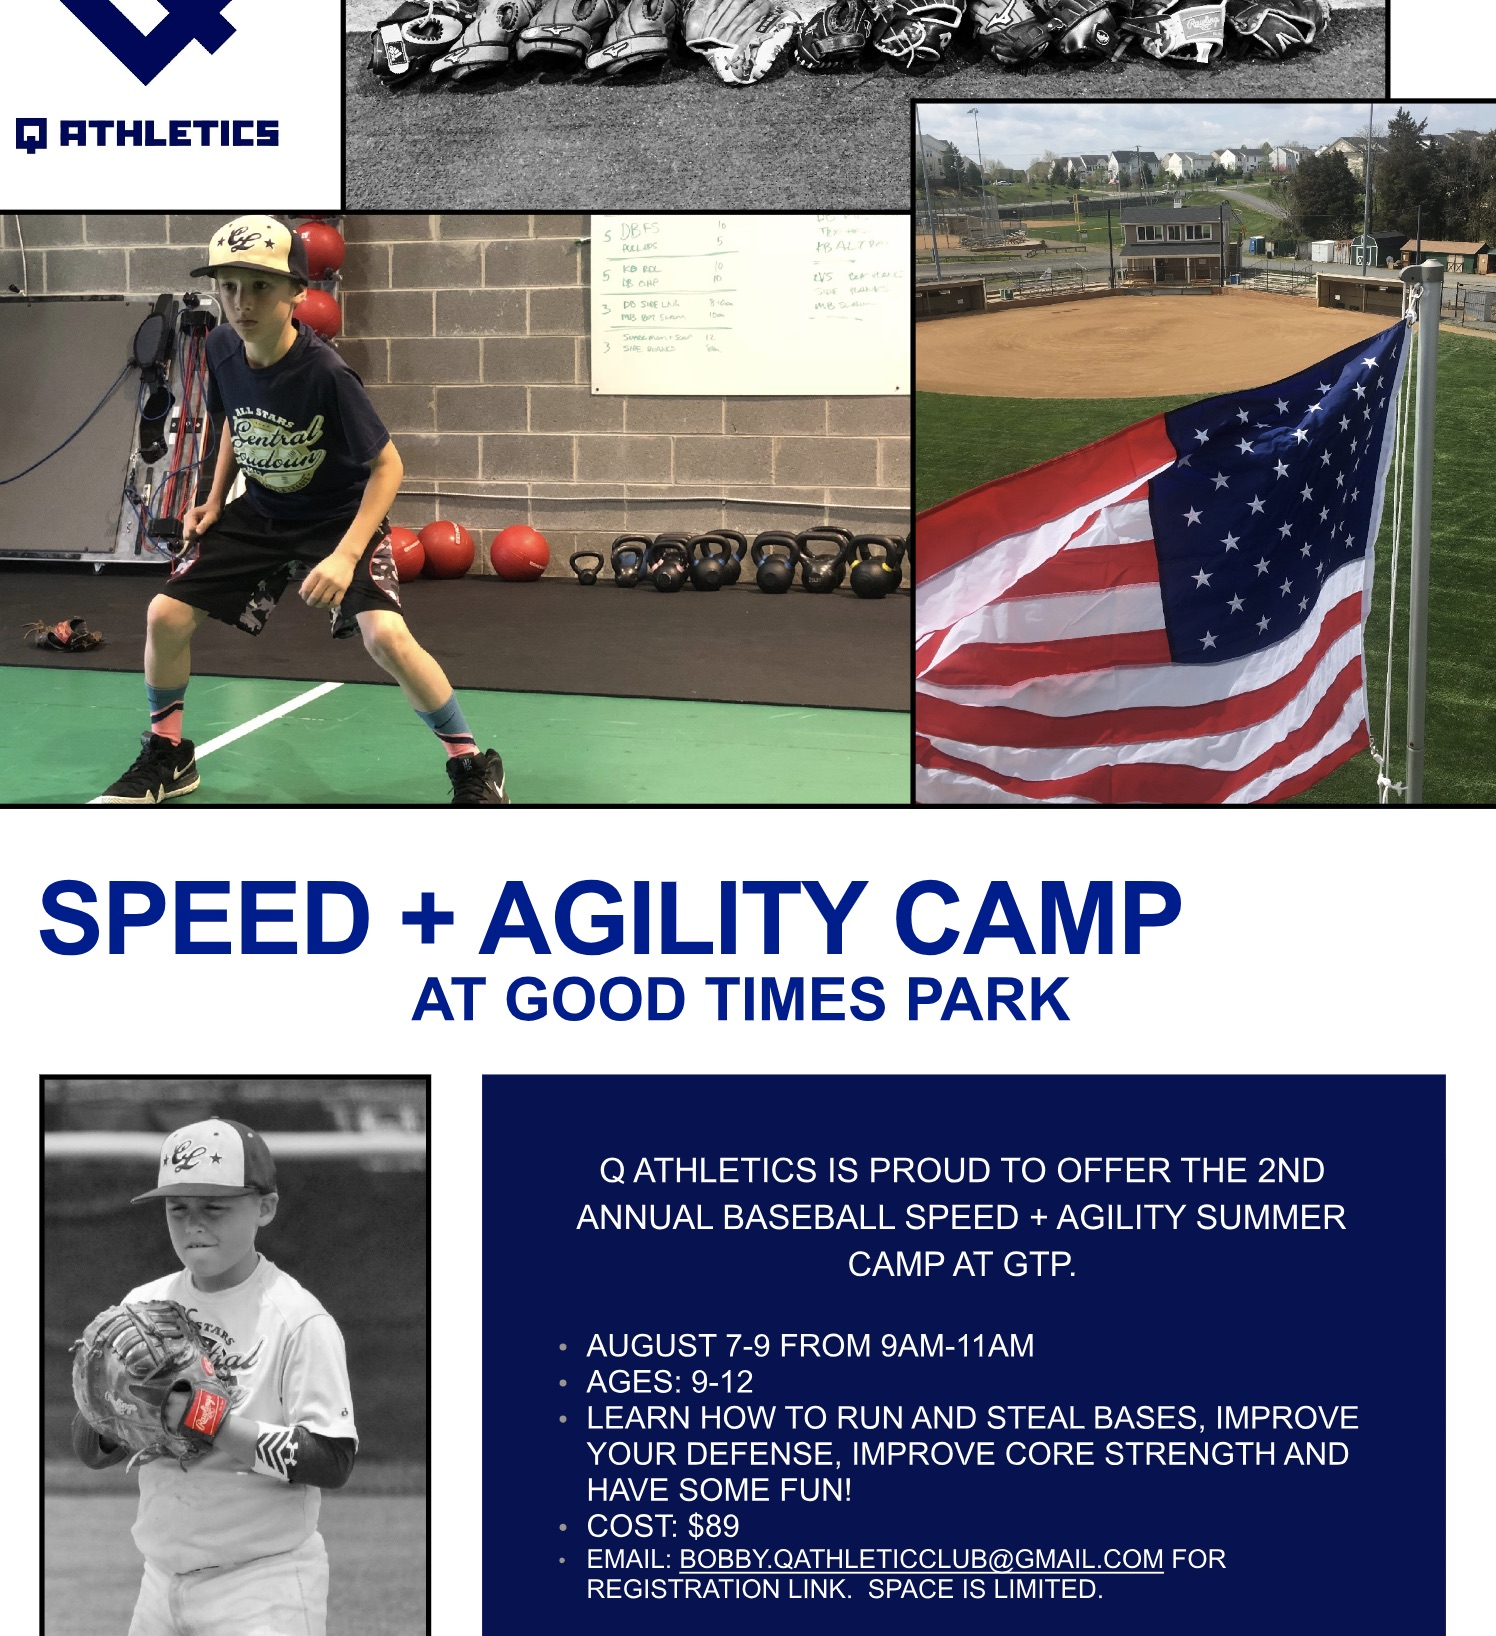 Summer campsother baseball central loudoun little league each day of the camp will include specific skill instruction modified games and the popular ripken quick ball mini whiffle ball stadium sciox Choice Image